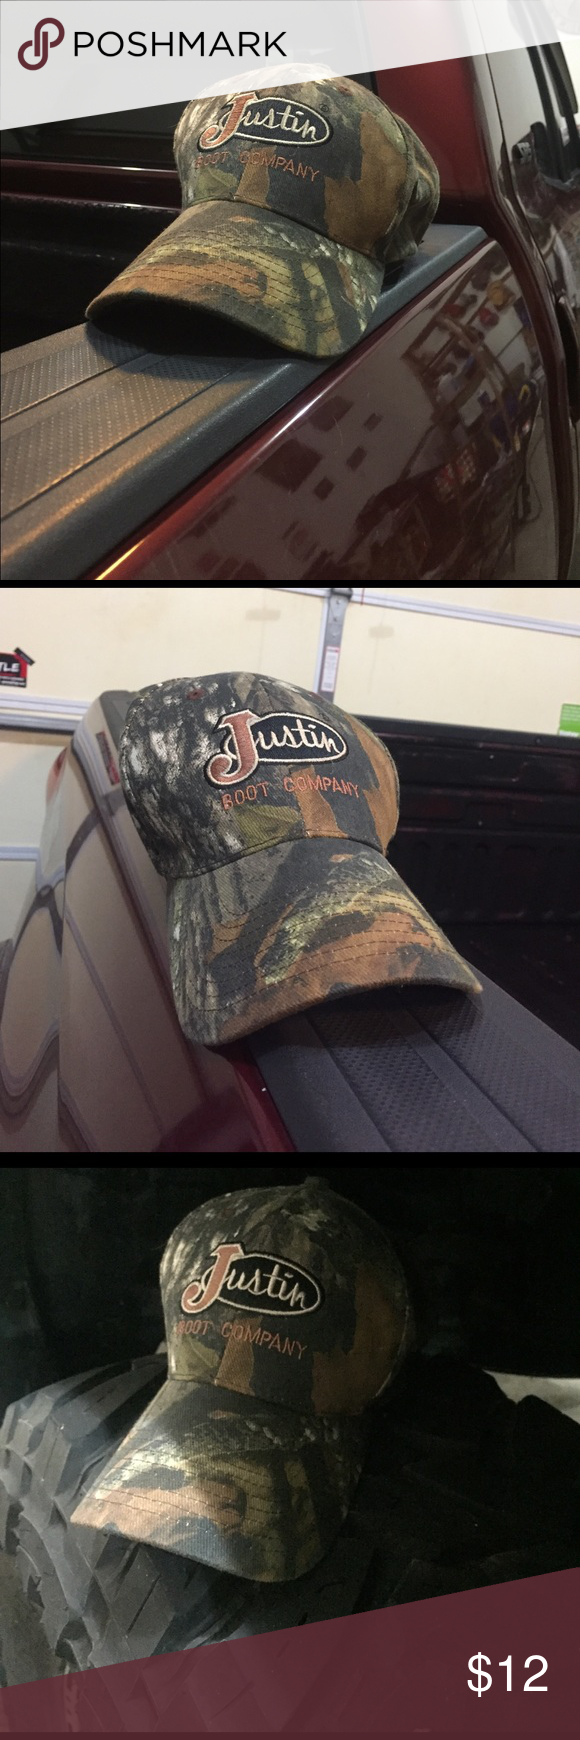 Men or Women s JUSTIN BOOT COMPANY Camouflage hat Never been worn !!!!  Purchased at a county fair for my brother--and he turned out not being a  fan! 8694c1a7c49